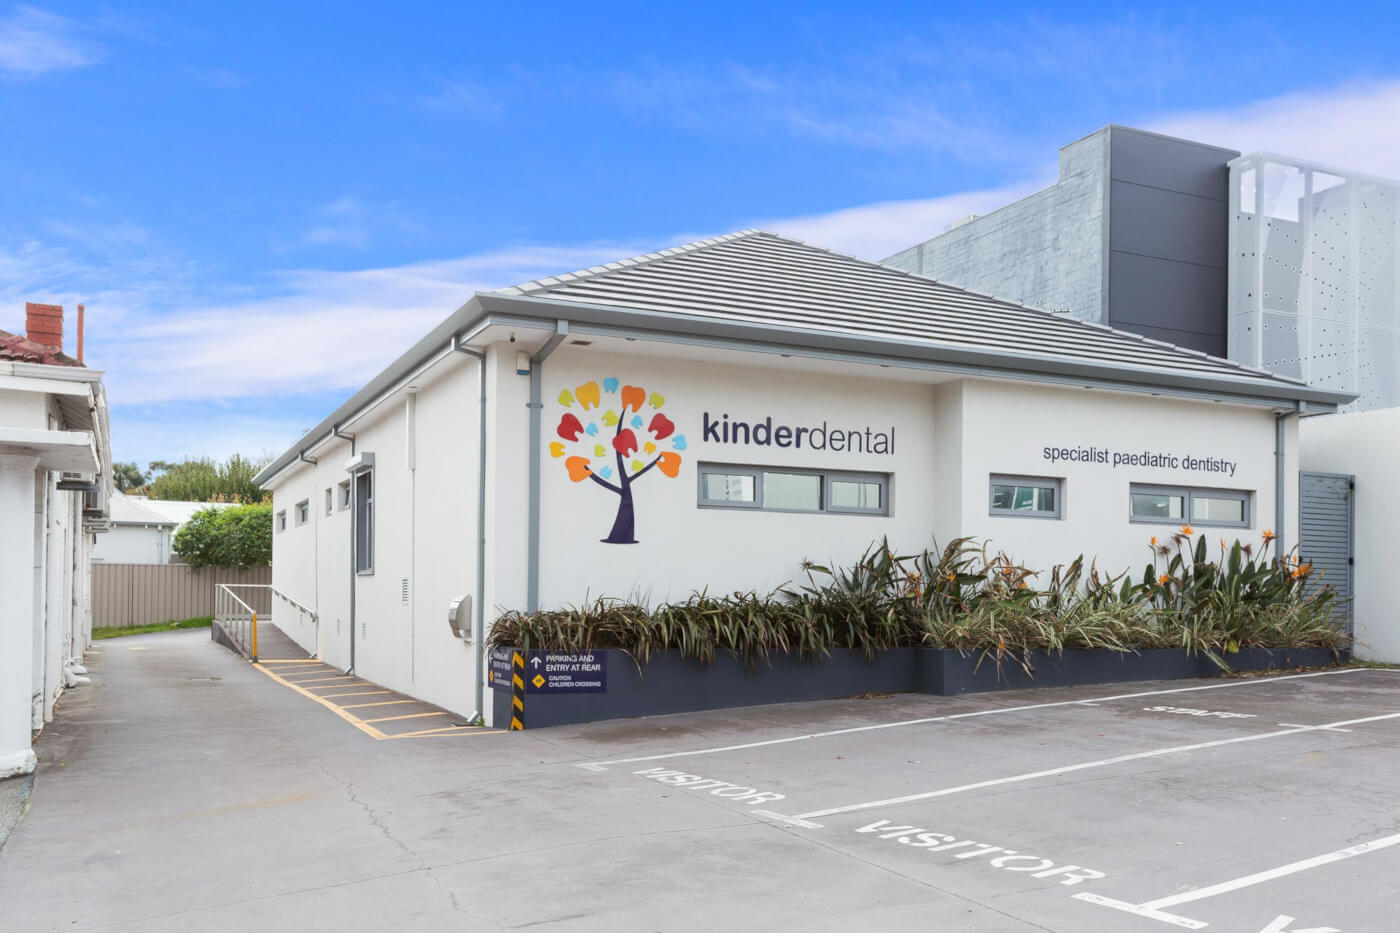 Kinderdental Building